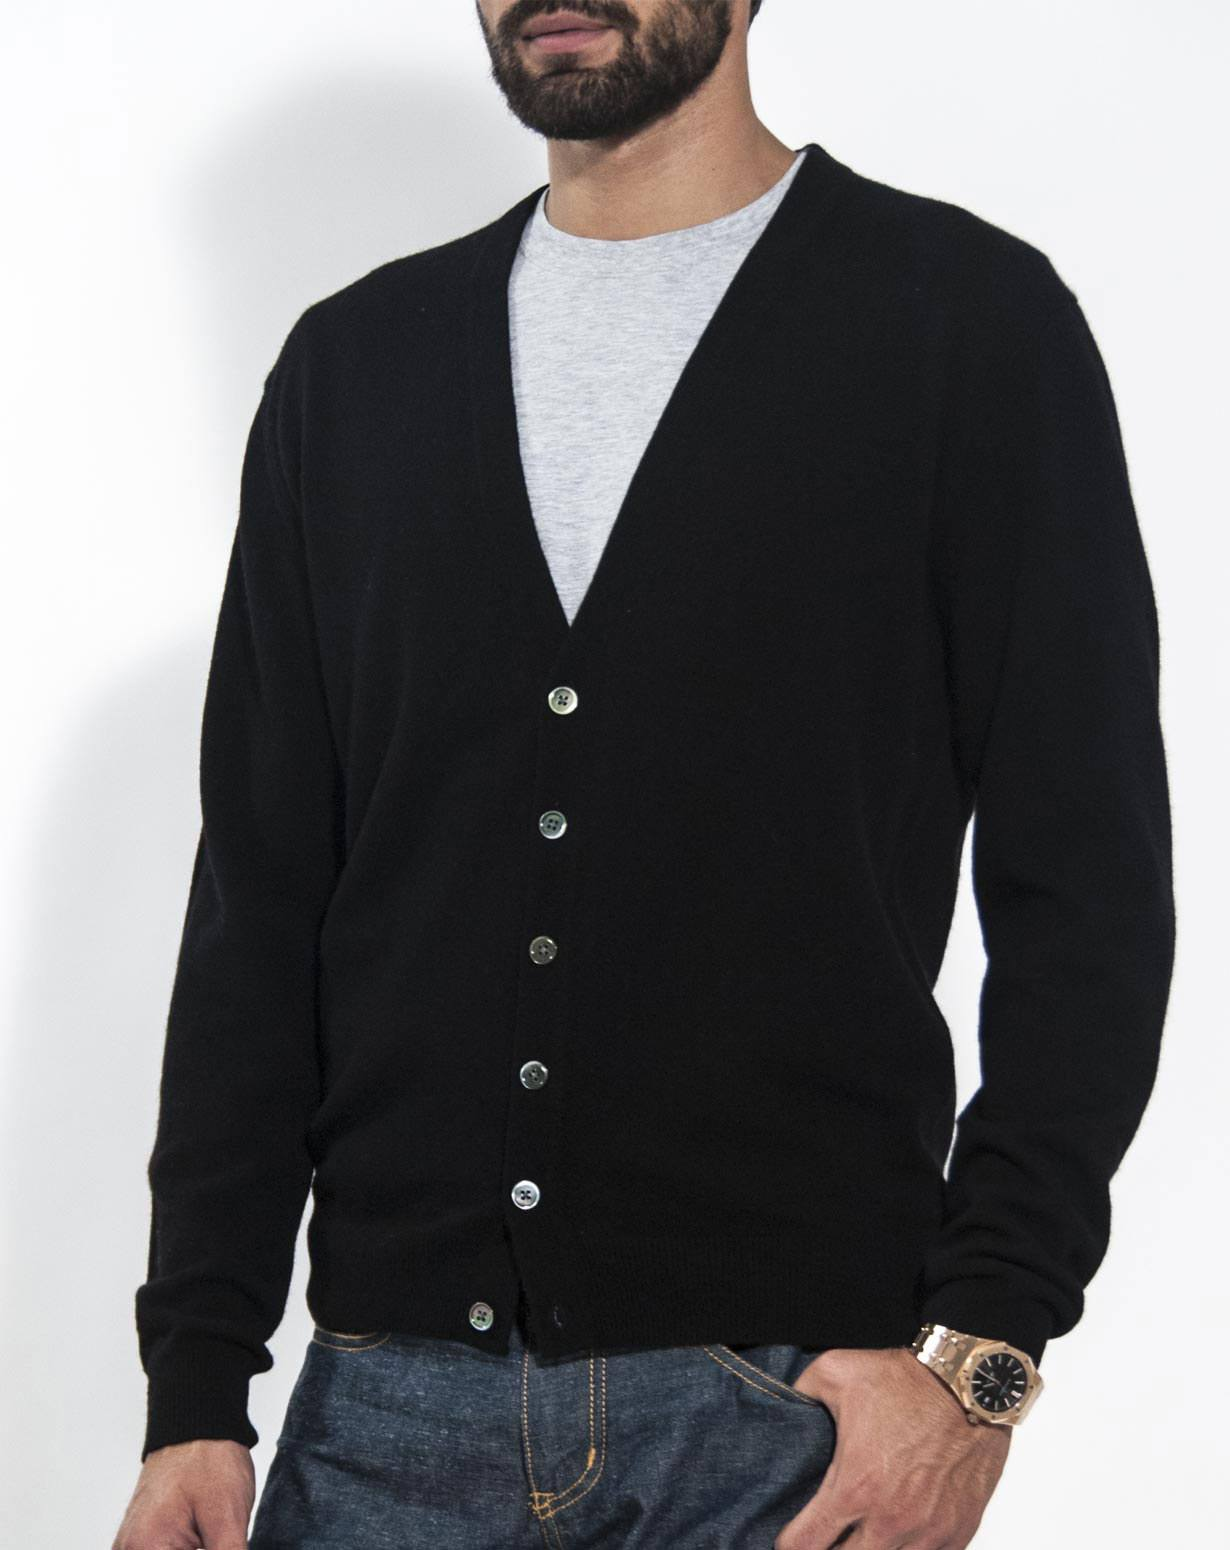 Men's Pure Cashmere Cardigan Jumper